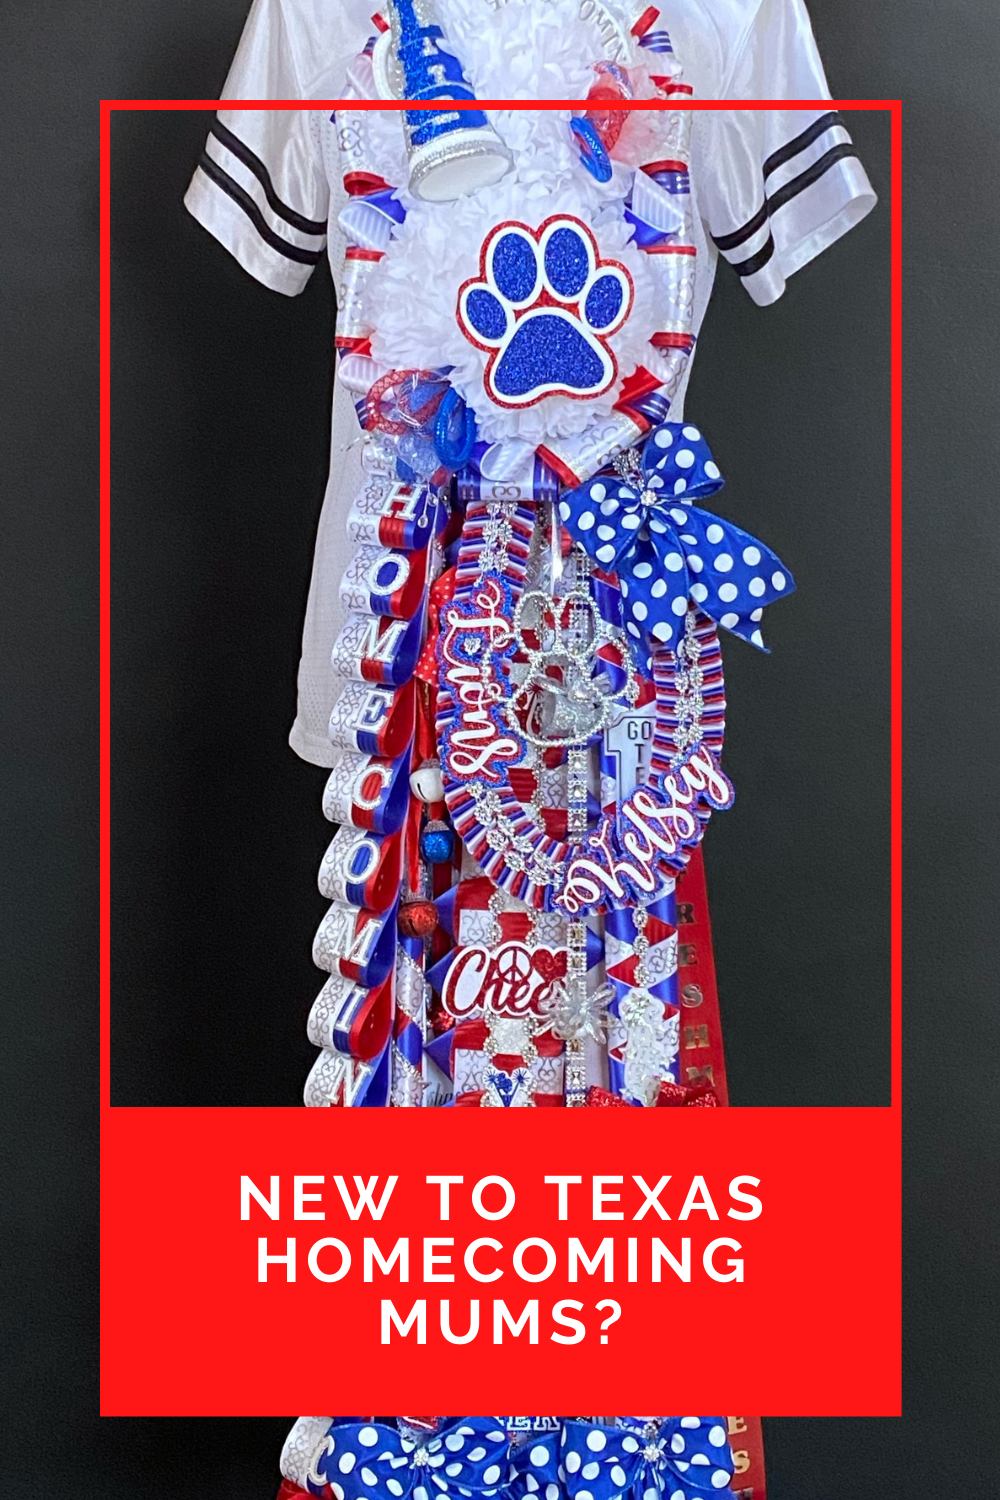 Leander cheer classic double homecoming mum